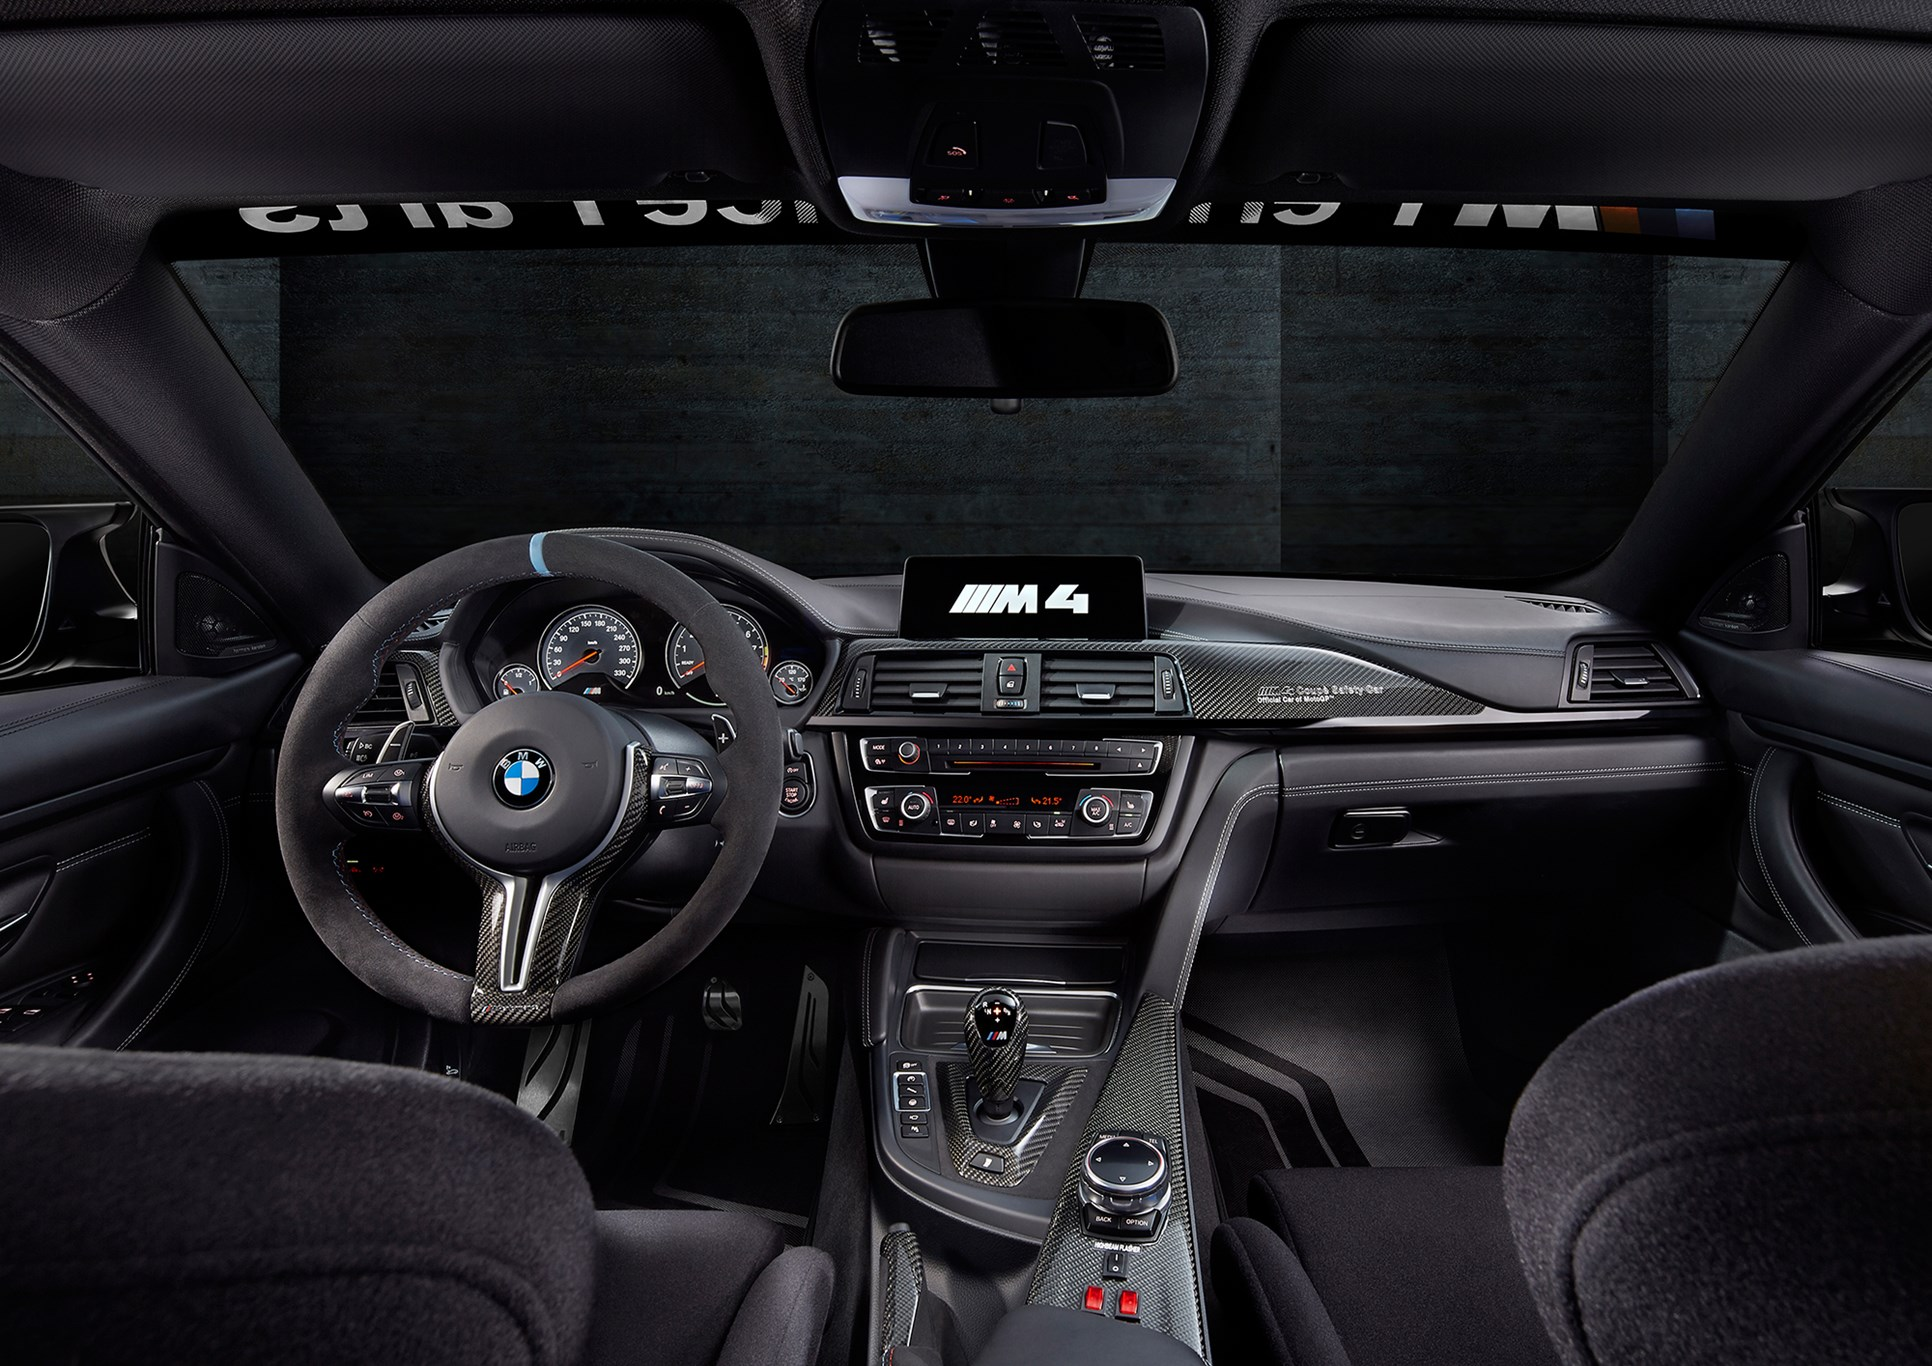 bmw m4 motogp safety car 2015 four wheels policing two by car magazine. Black Bedroom Furniture Sets. Home Design Ideas